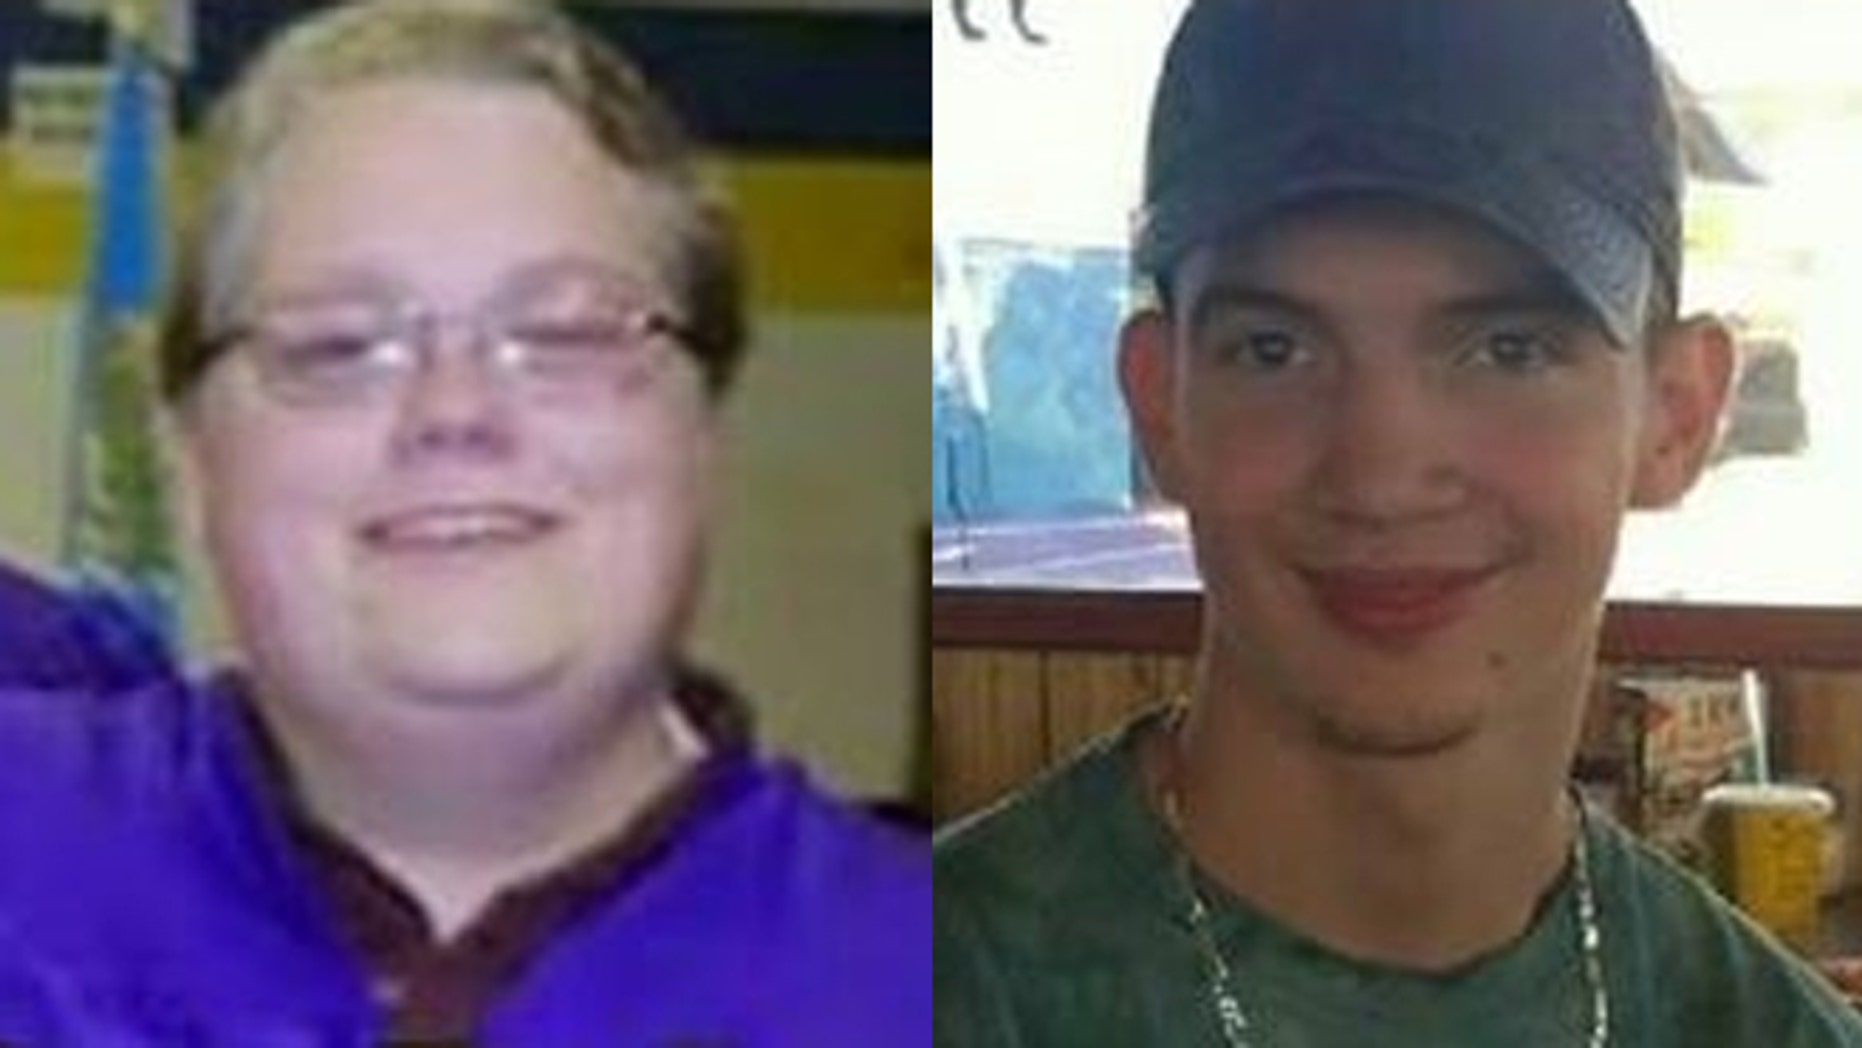 From the left, Ben Babar and Cody Parrick vanished after attending the Rocklahoma music festival.